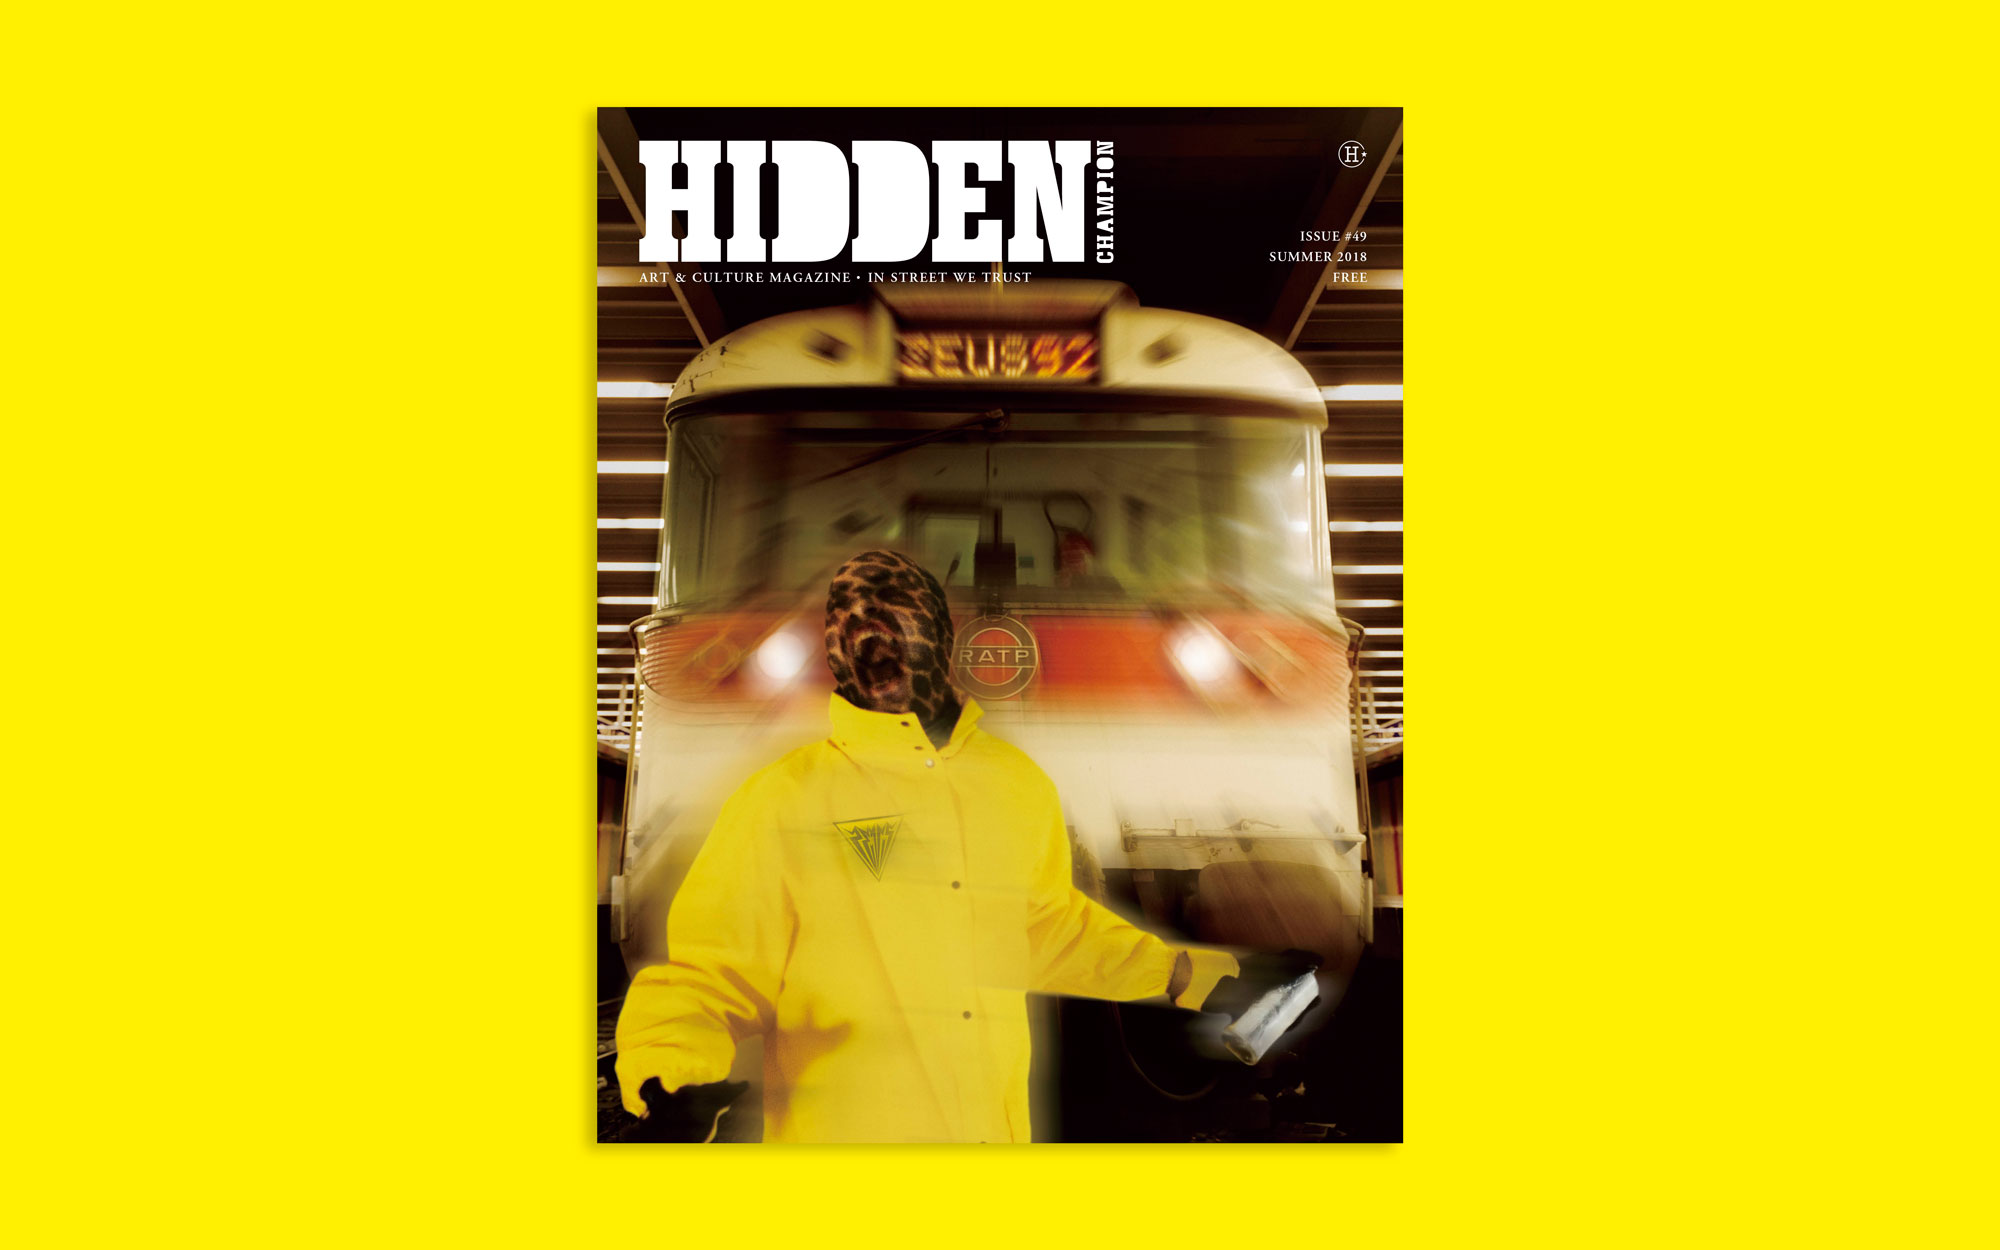 HIDDEN CHAMPION Issue49, Summer 2018